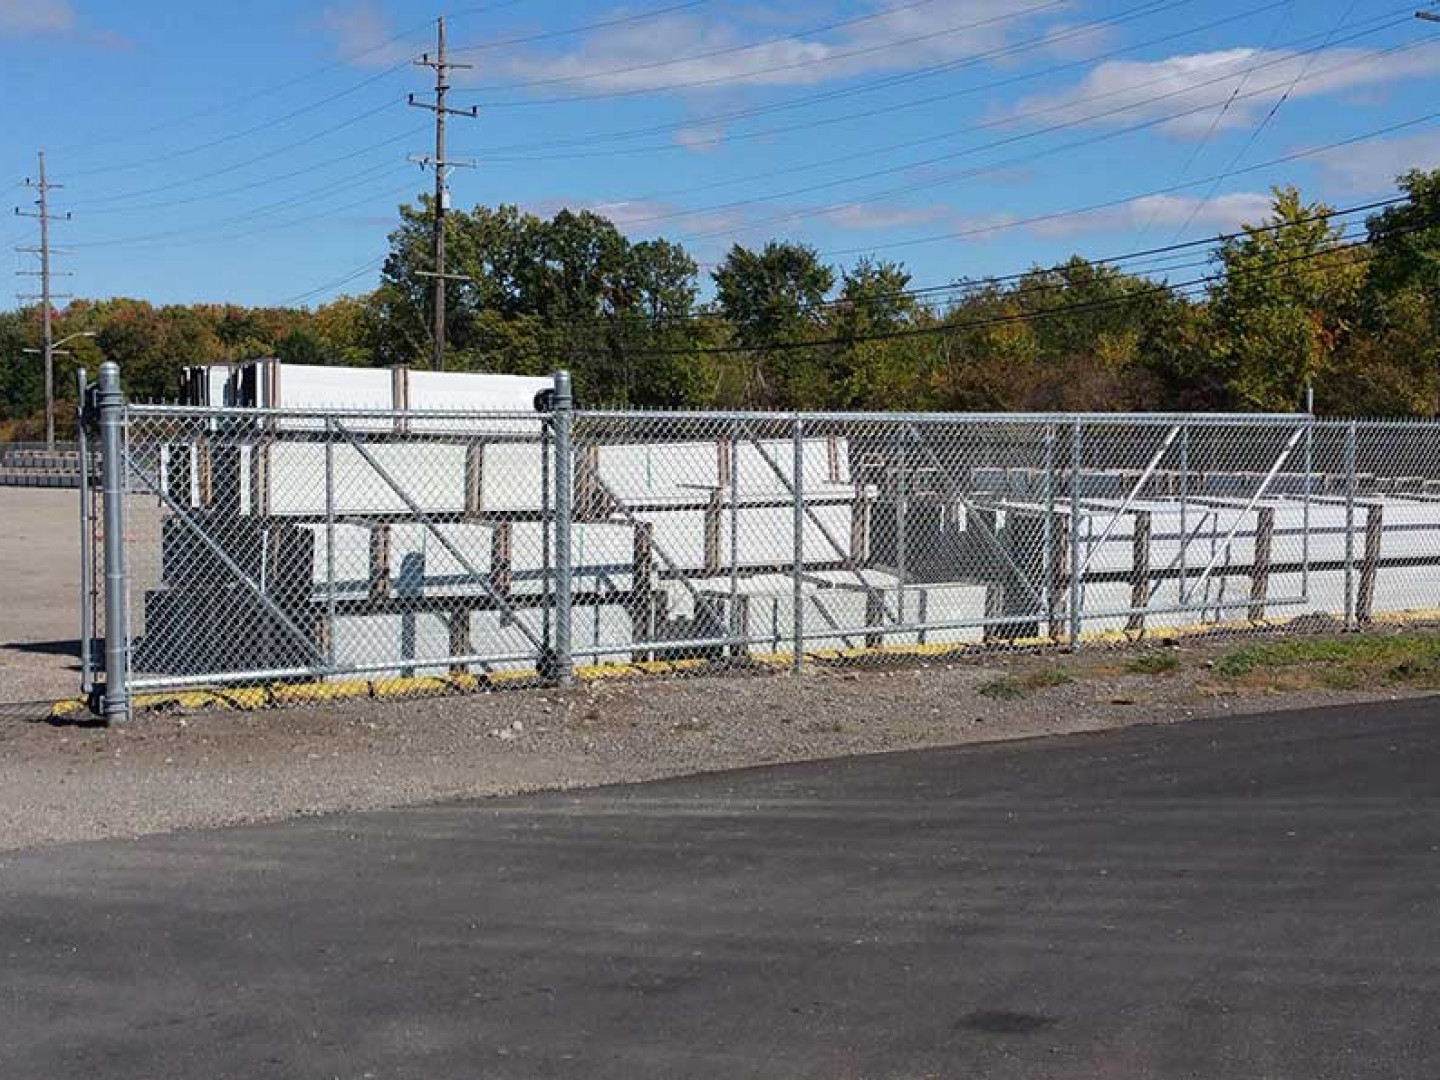 Line Your Commercial Property With Commercial Fencing in Belleville, Ypsilanti, Romulus, Ann Arbor and surrounding areas in MI